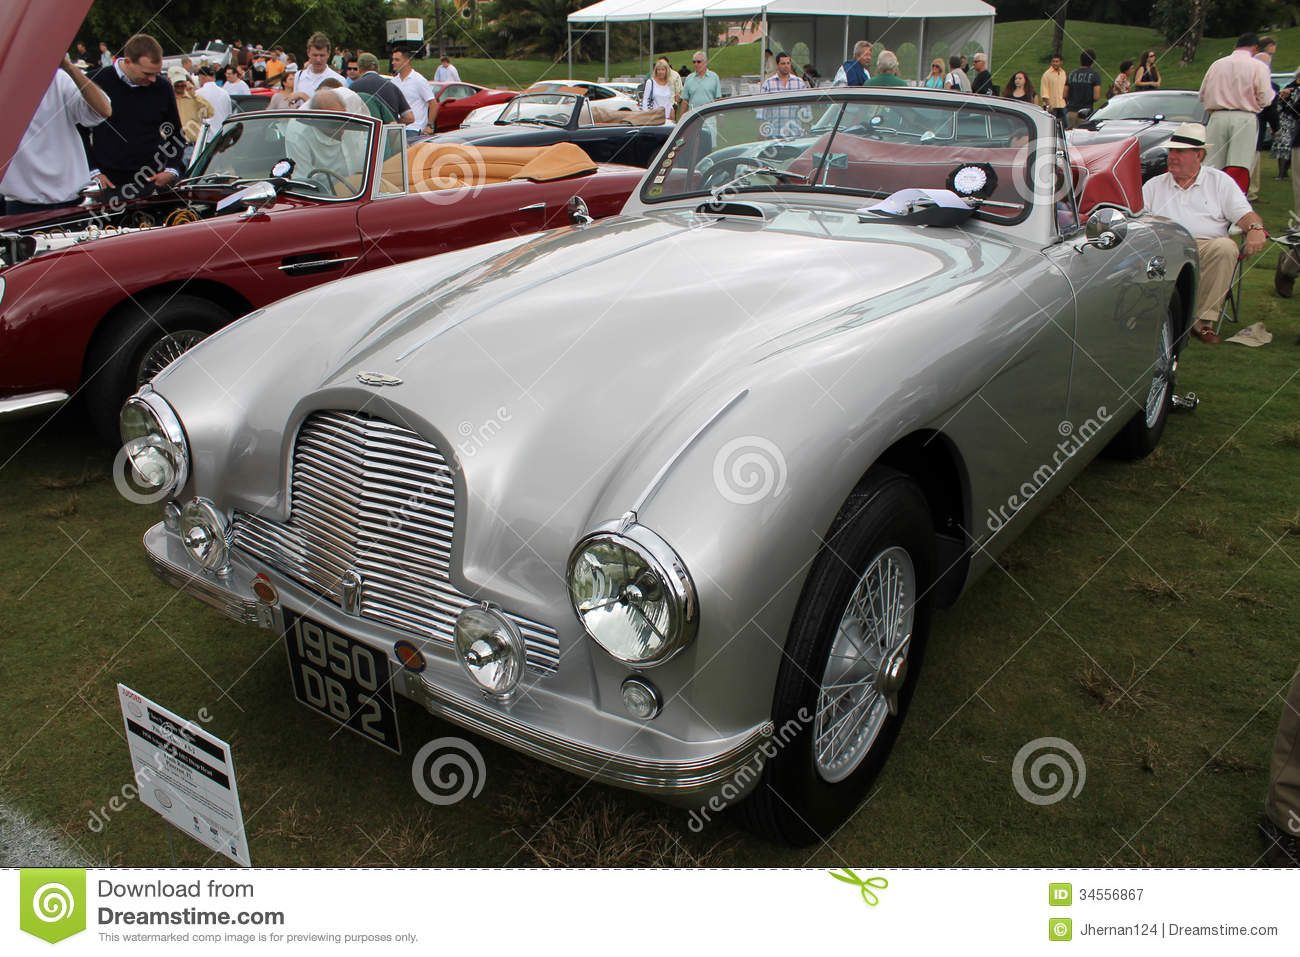 1 038 Aston Martin Classic Car Photos Free Royalty Free Stock Photos From Dreamstime